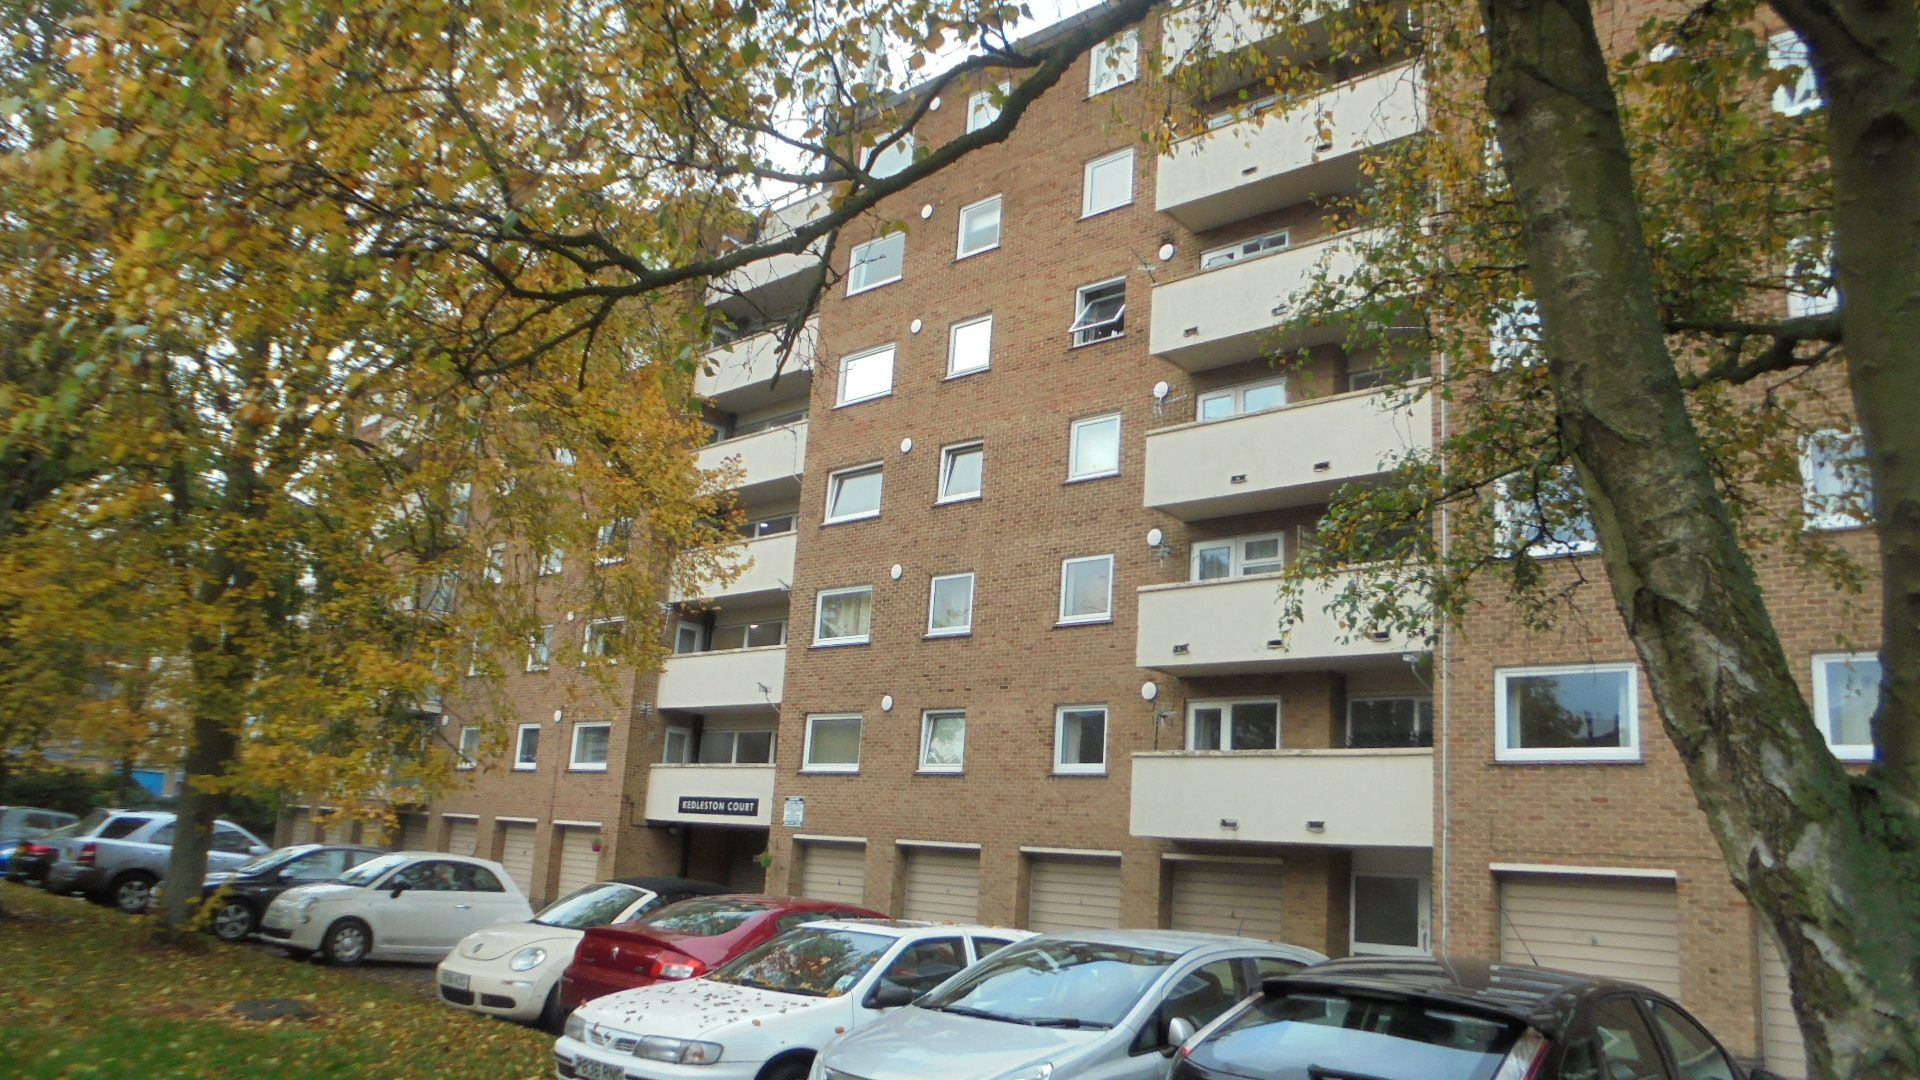 Image of 1 Bedroom Flat, 36 Kedleston CourtNorbury Close, Allestree